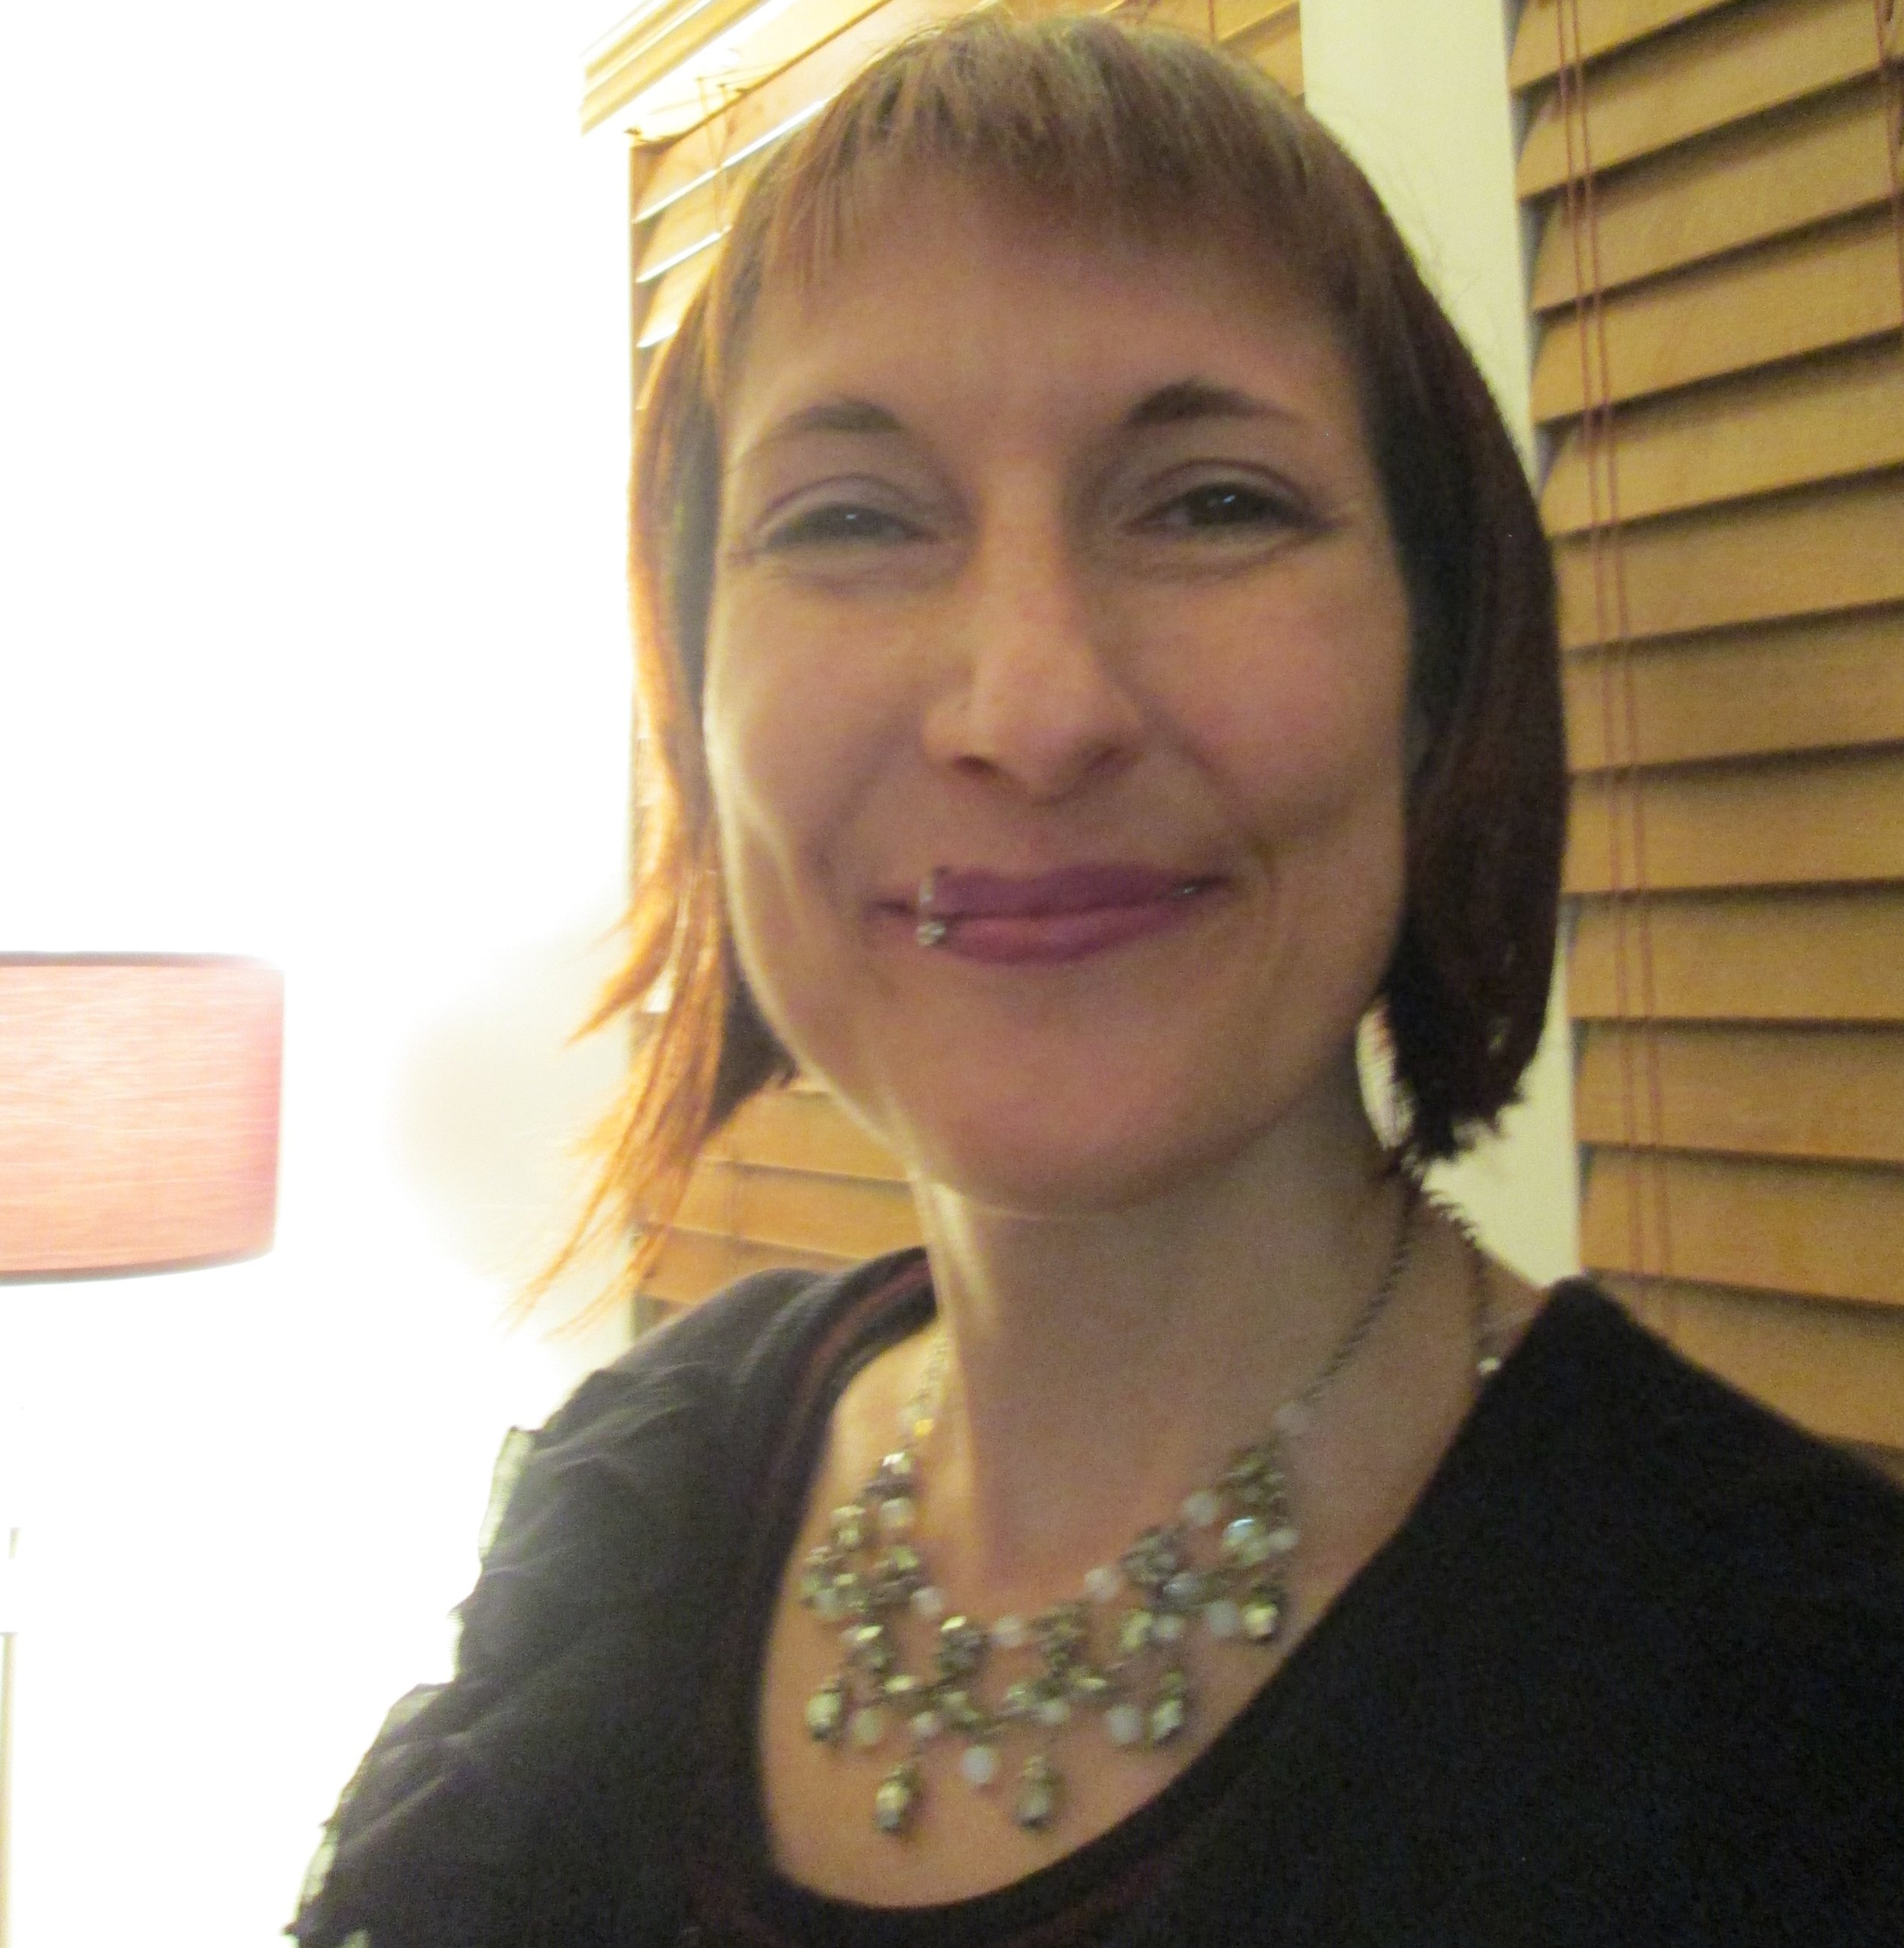 - Juliet Cook's poetry has appeared in a small multitude of magazines. She is the author of numerous poetry chapbooks, recently including a collaboration with j/j hastain called